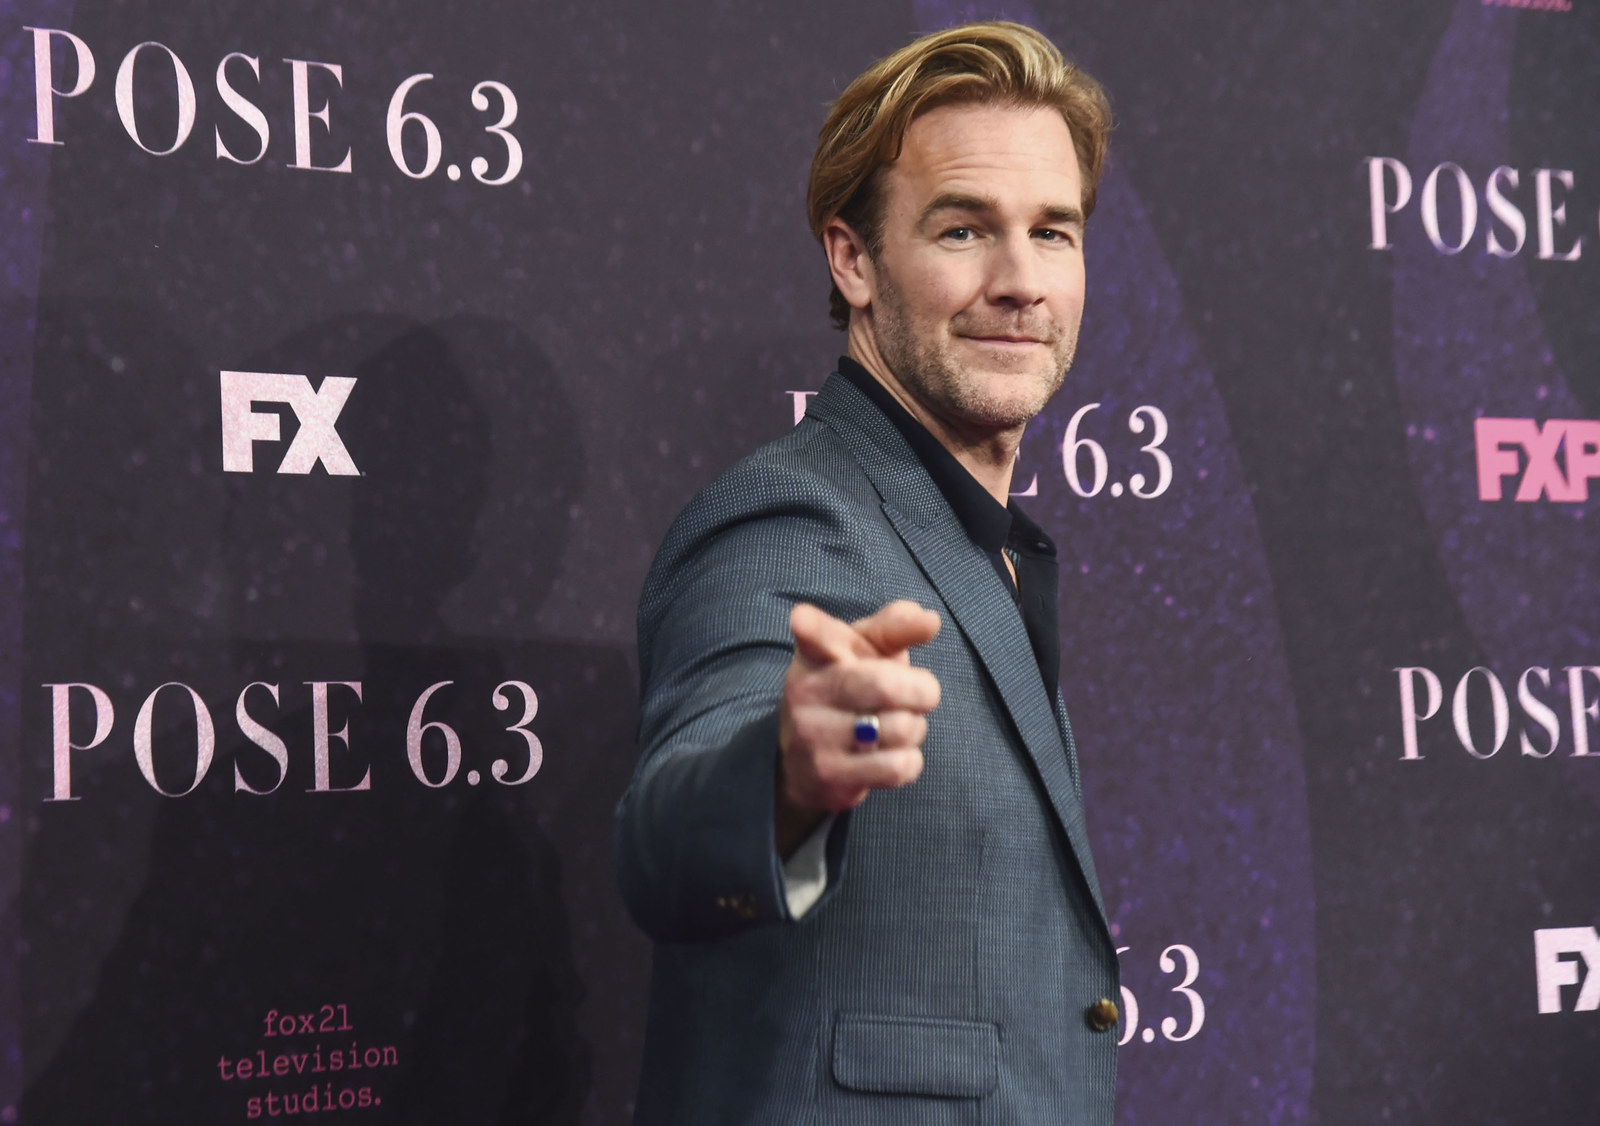 And James Van Der Beek is turning 42 on March 8.